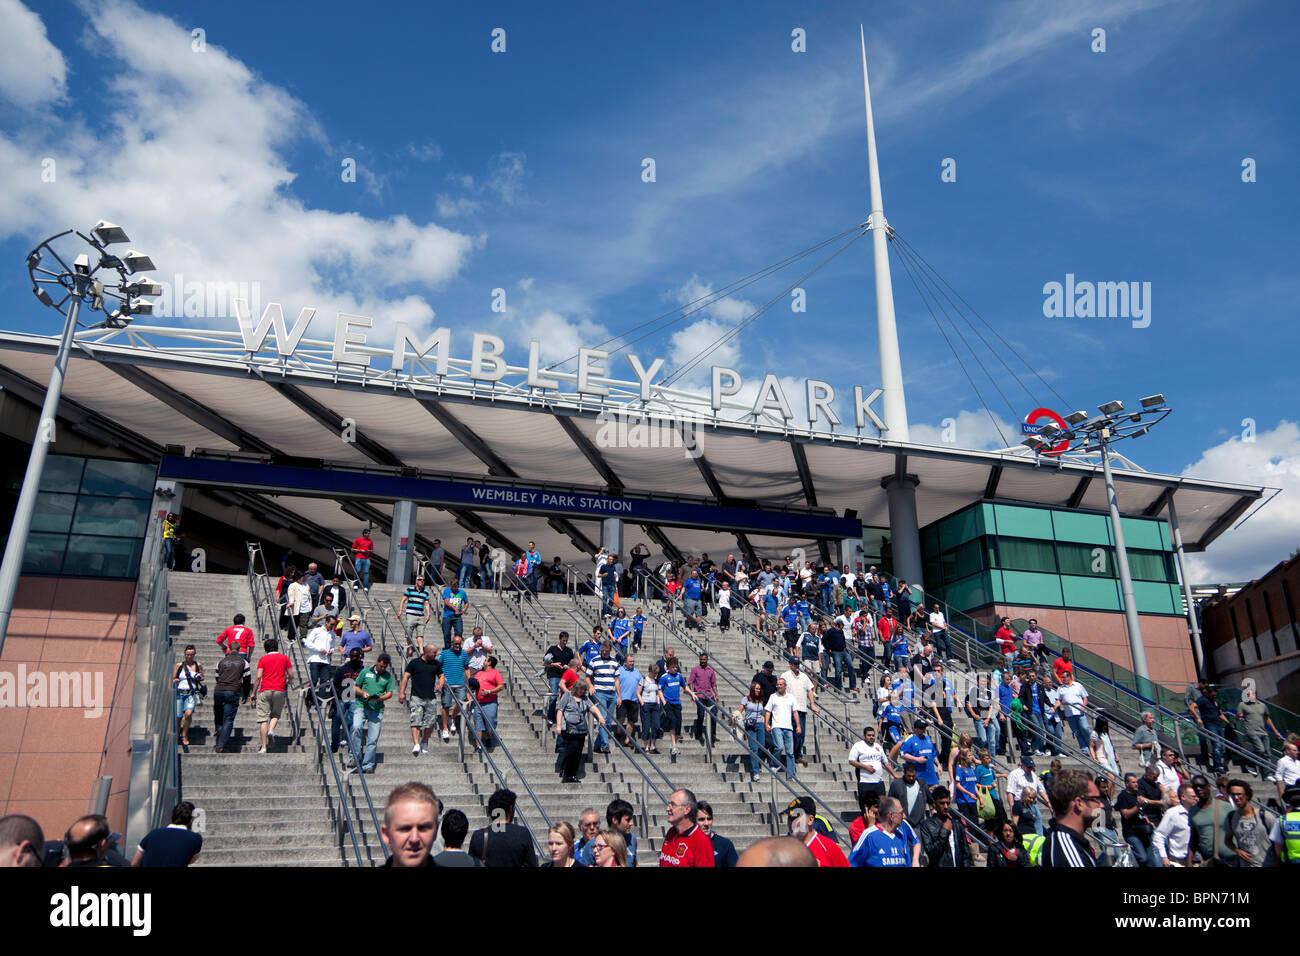 Football Supporters at Wembley Park Underground Station - Stock Image